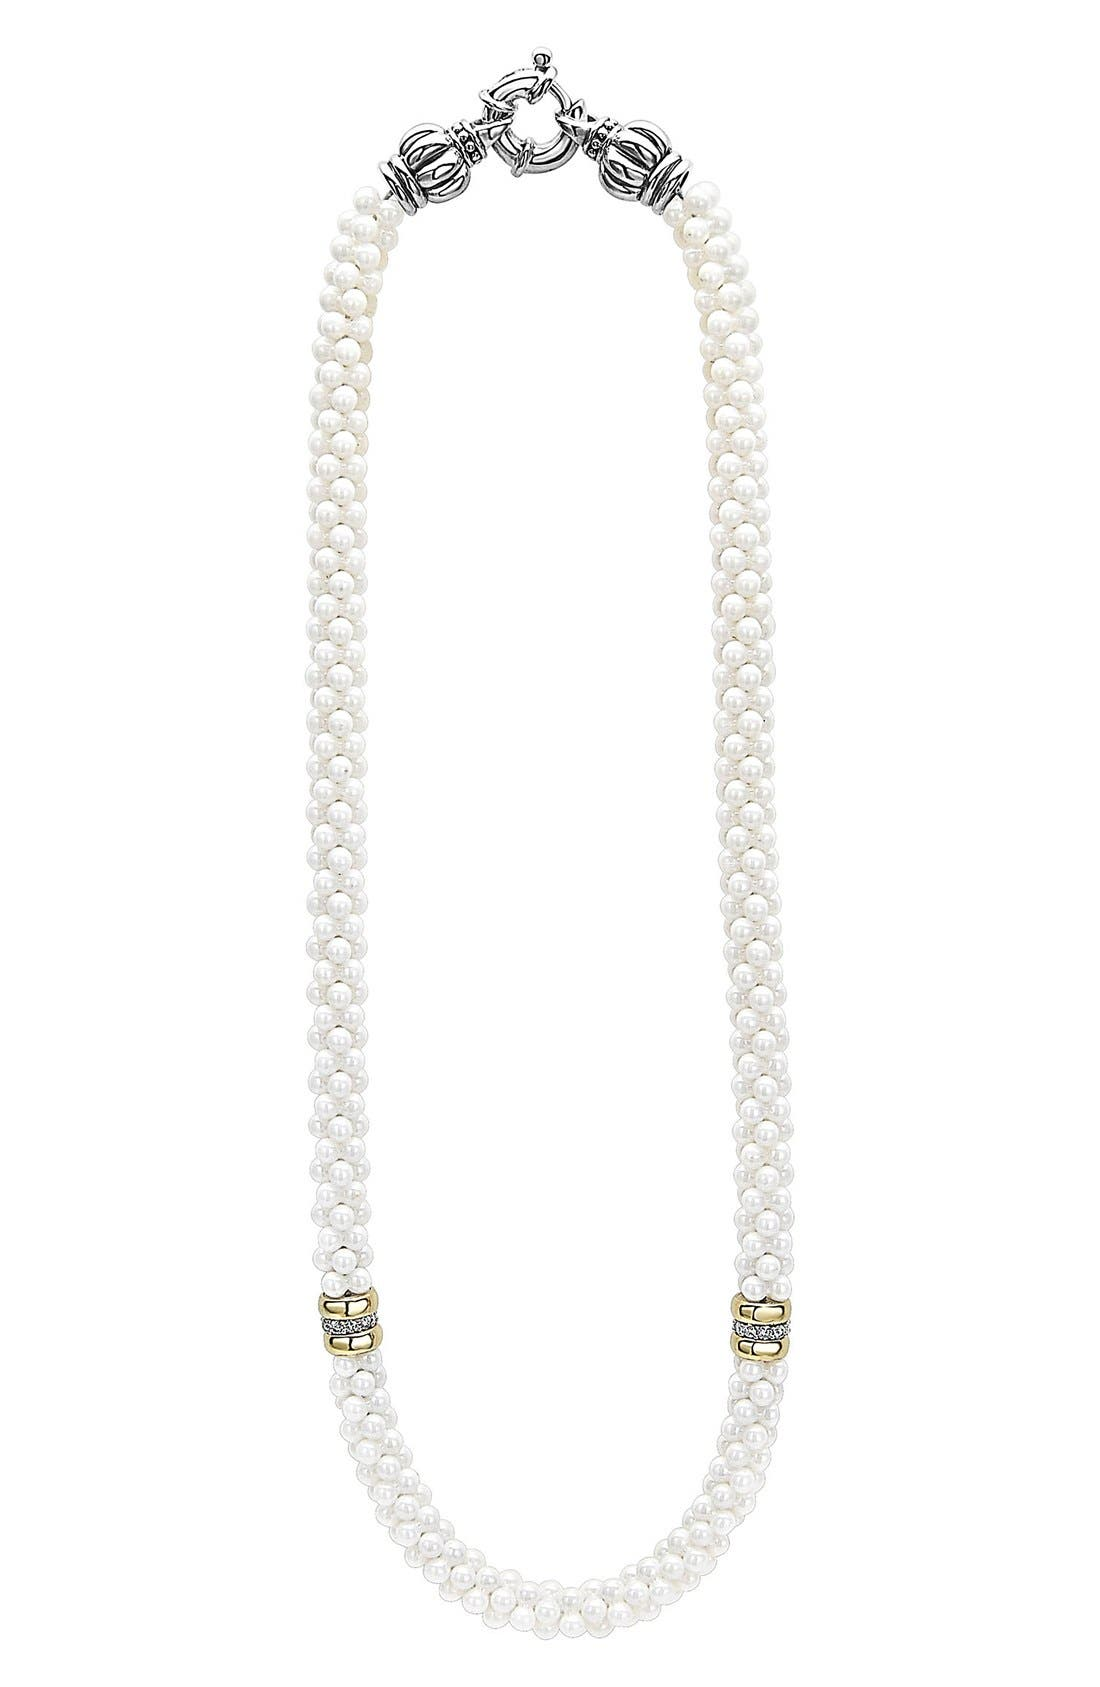 'White Caviar' 7mm Beaded Diamond Station Necklace,                         Main,                         color, White Caviar/ Yellow Gold